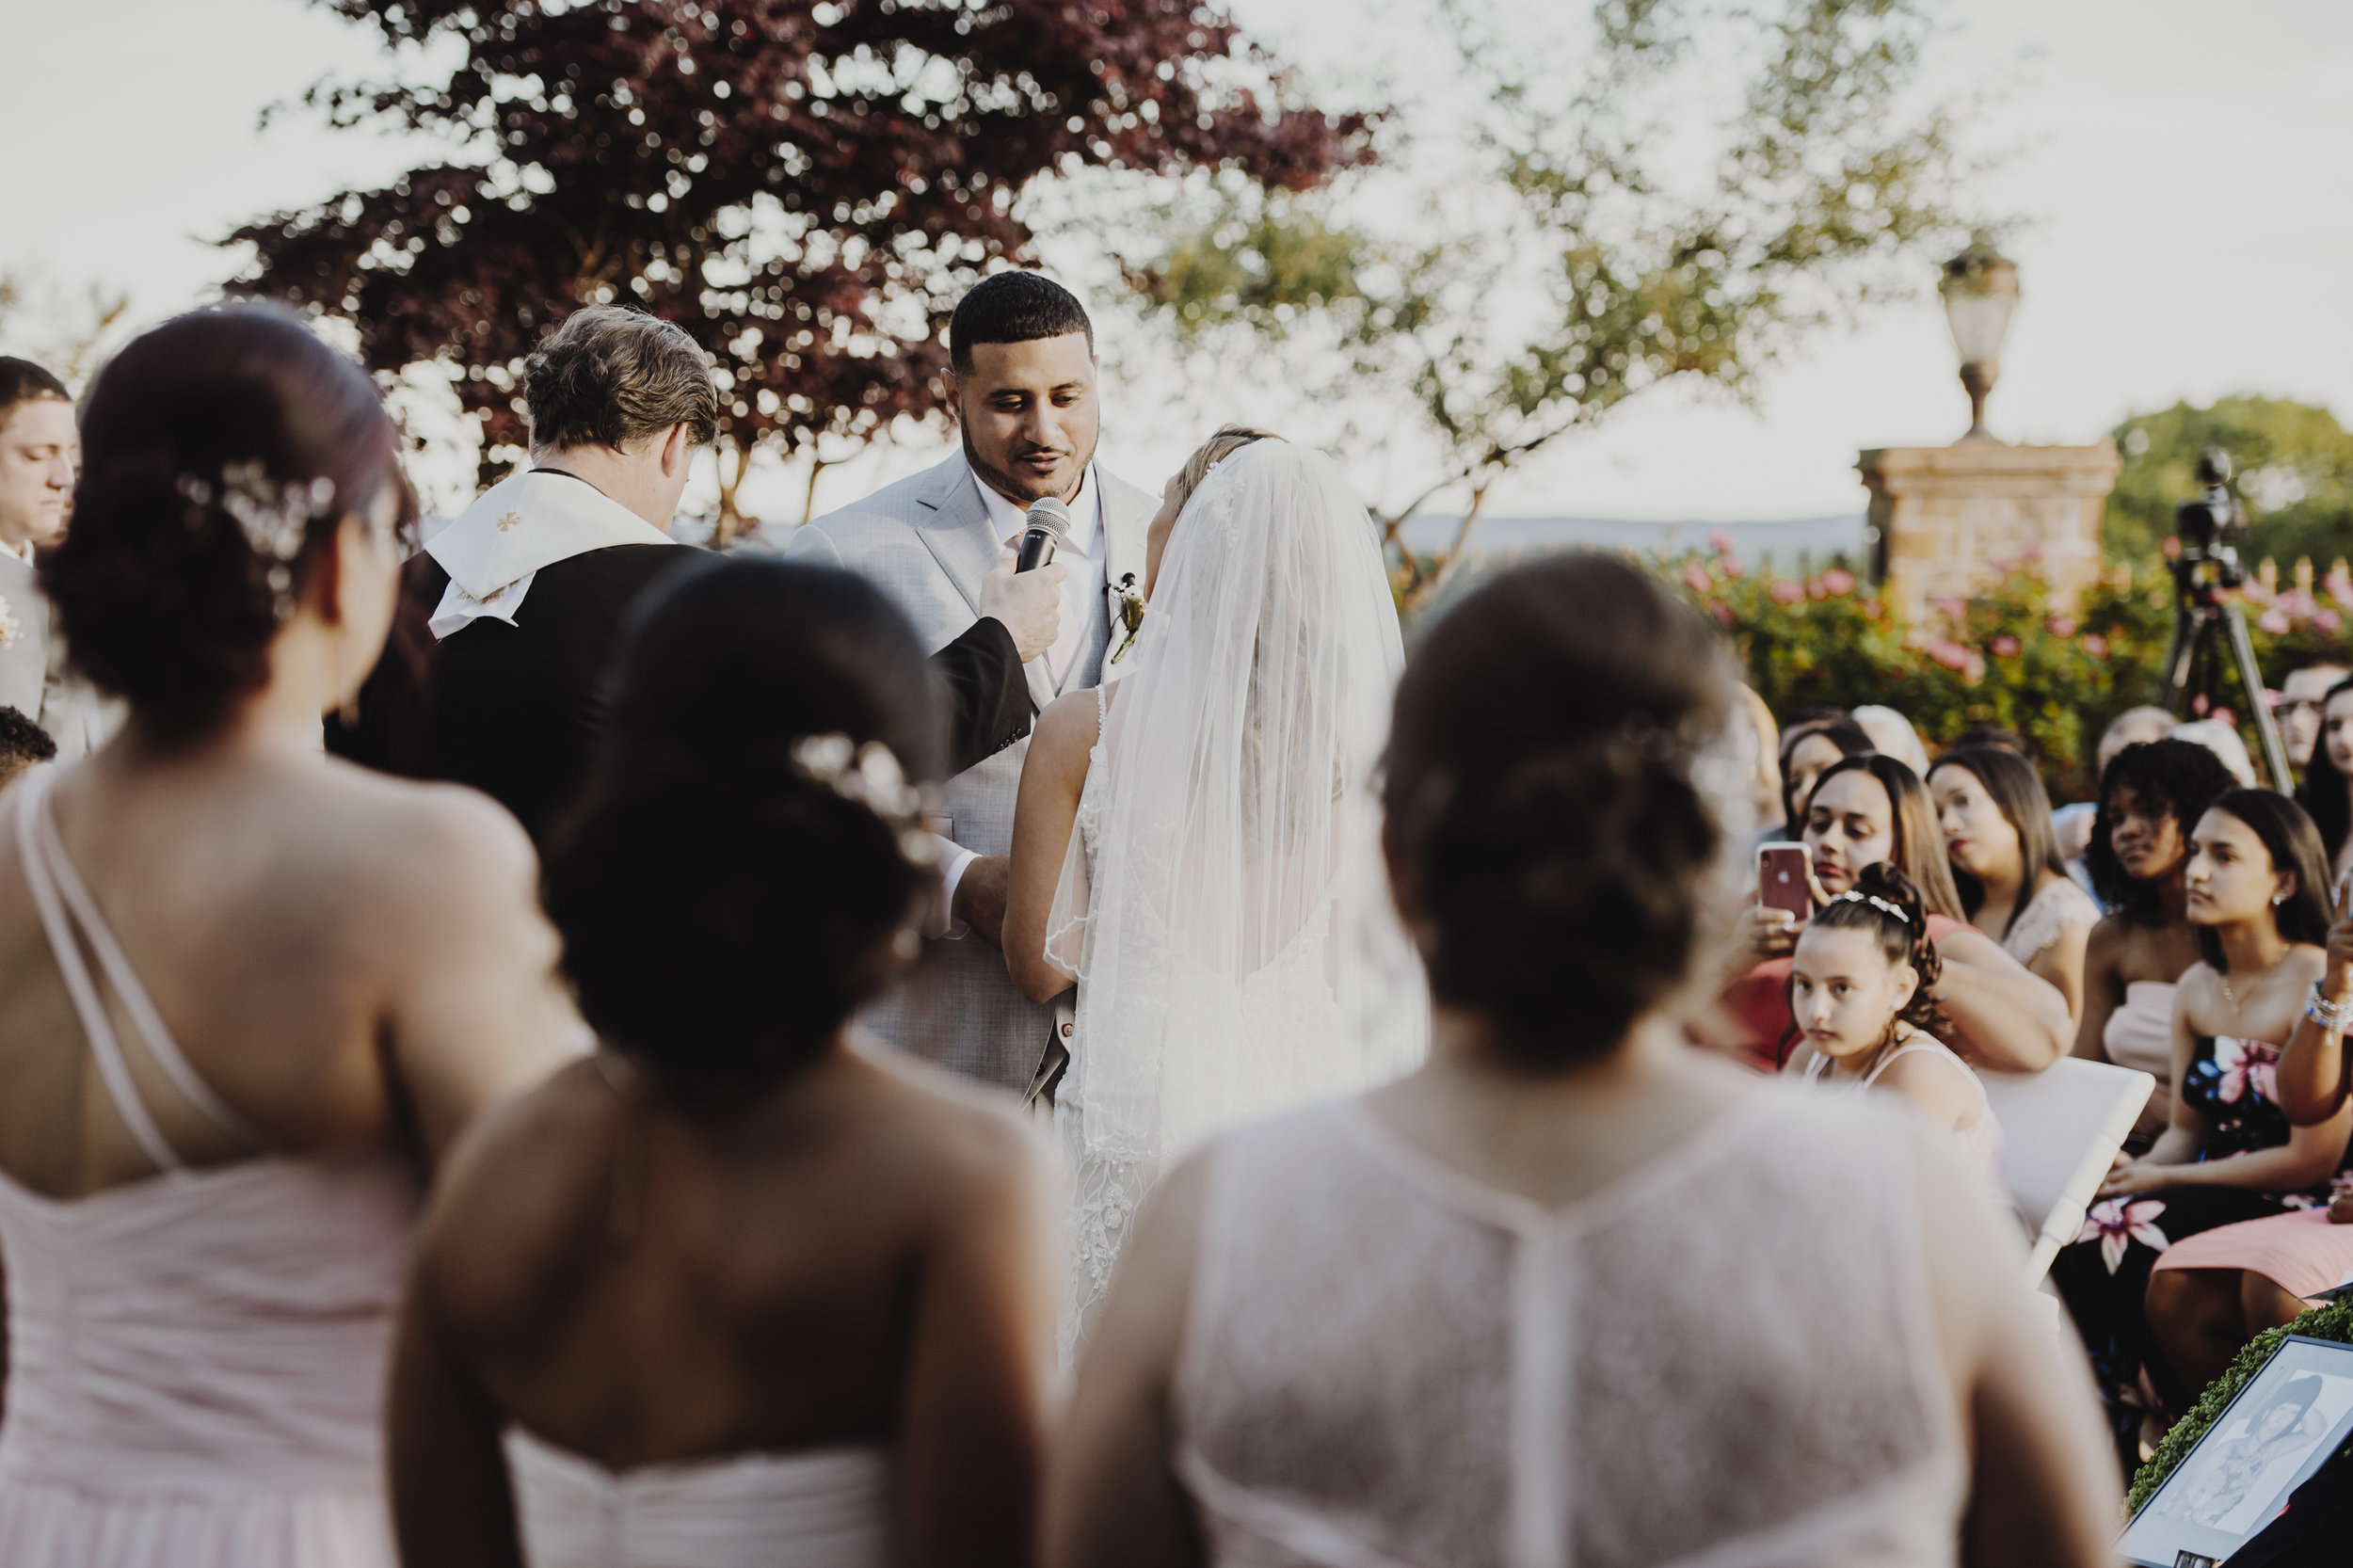 Yesenia & Sam Wedding at Giorgio's by Unveiled-Weddings.com